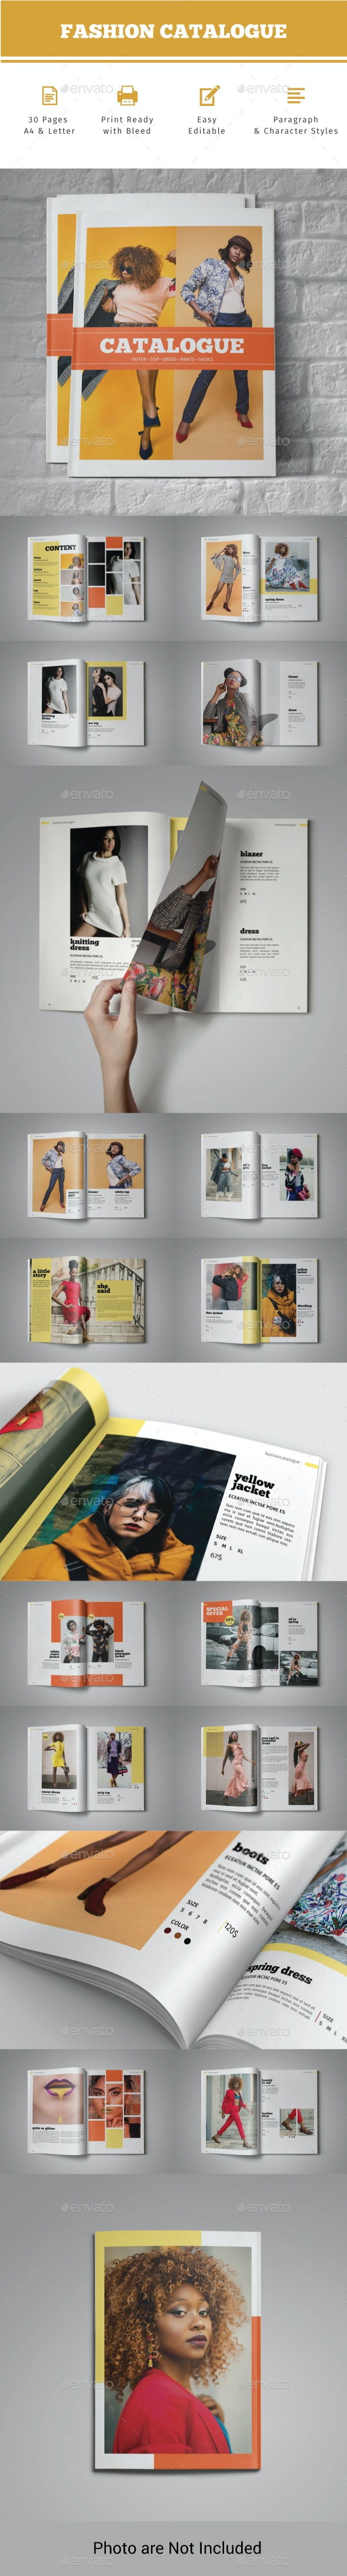 Indesign Catalog Template - Catalogs Brochures